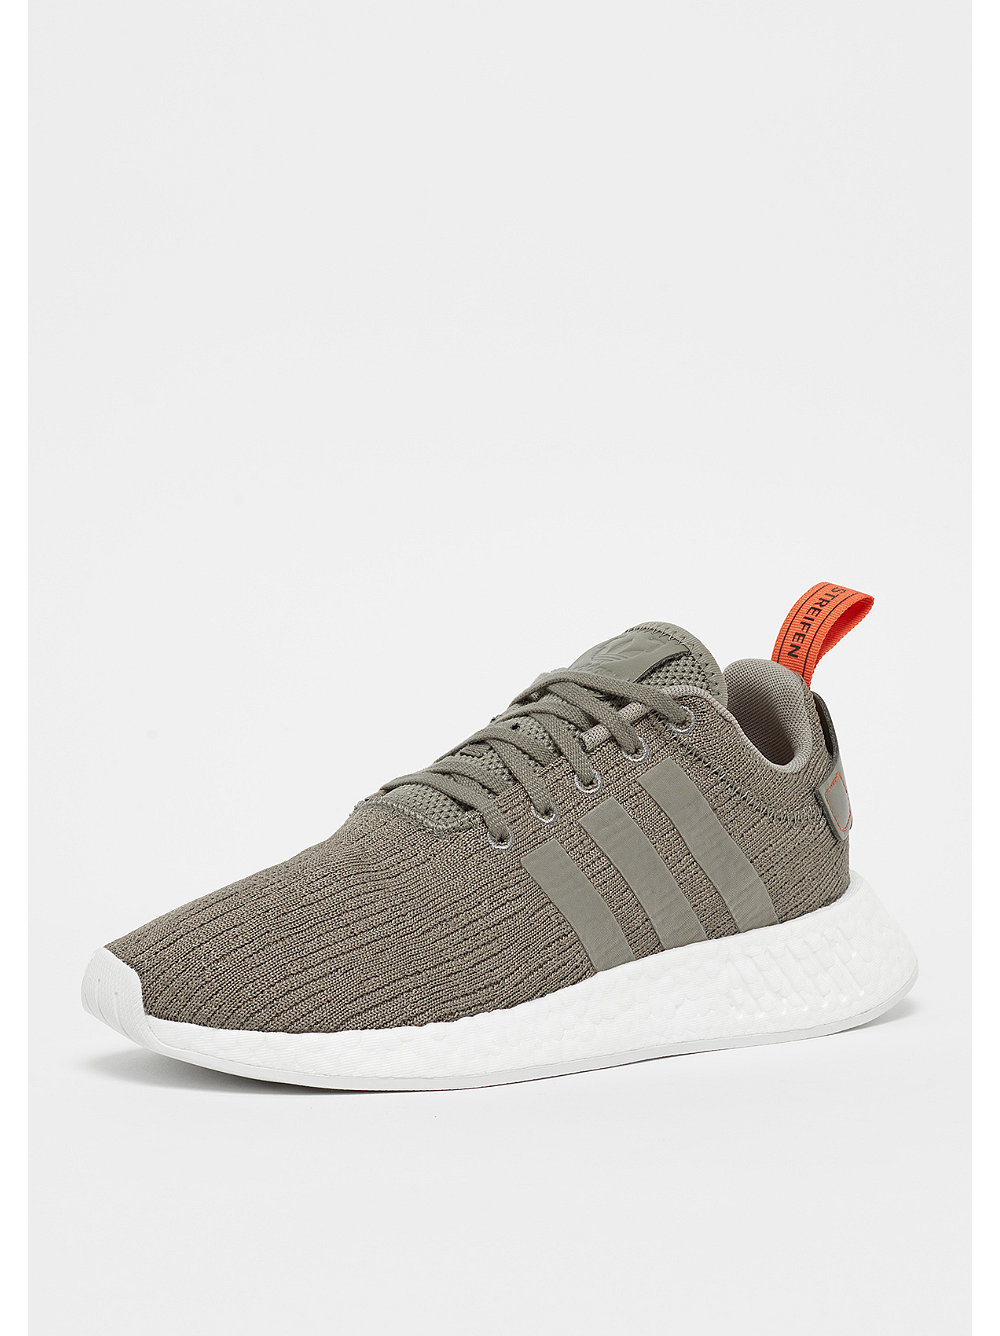 buy online 34c04 0e18b Men s Casual Street Shoe adidas NMD R2 Trace Cargo Future